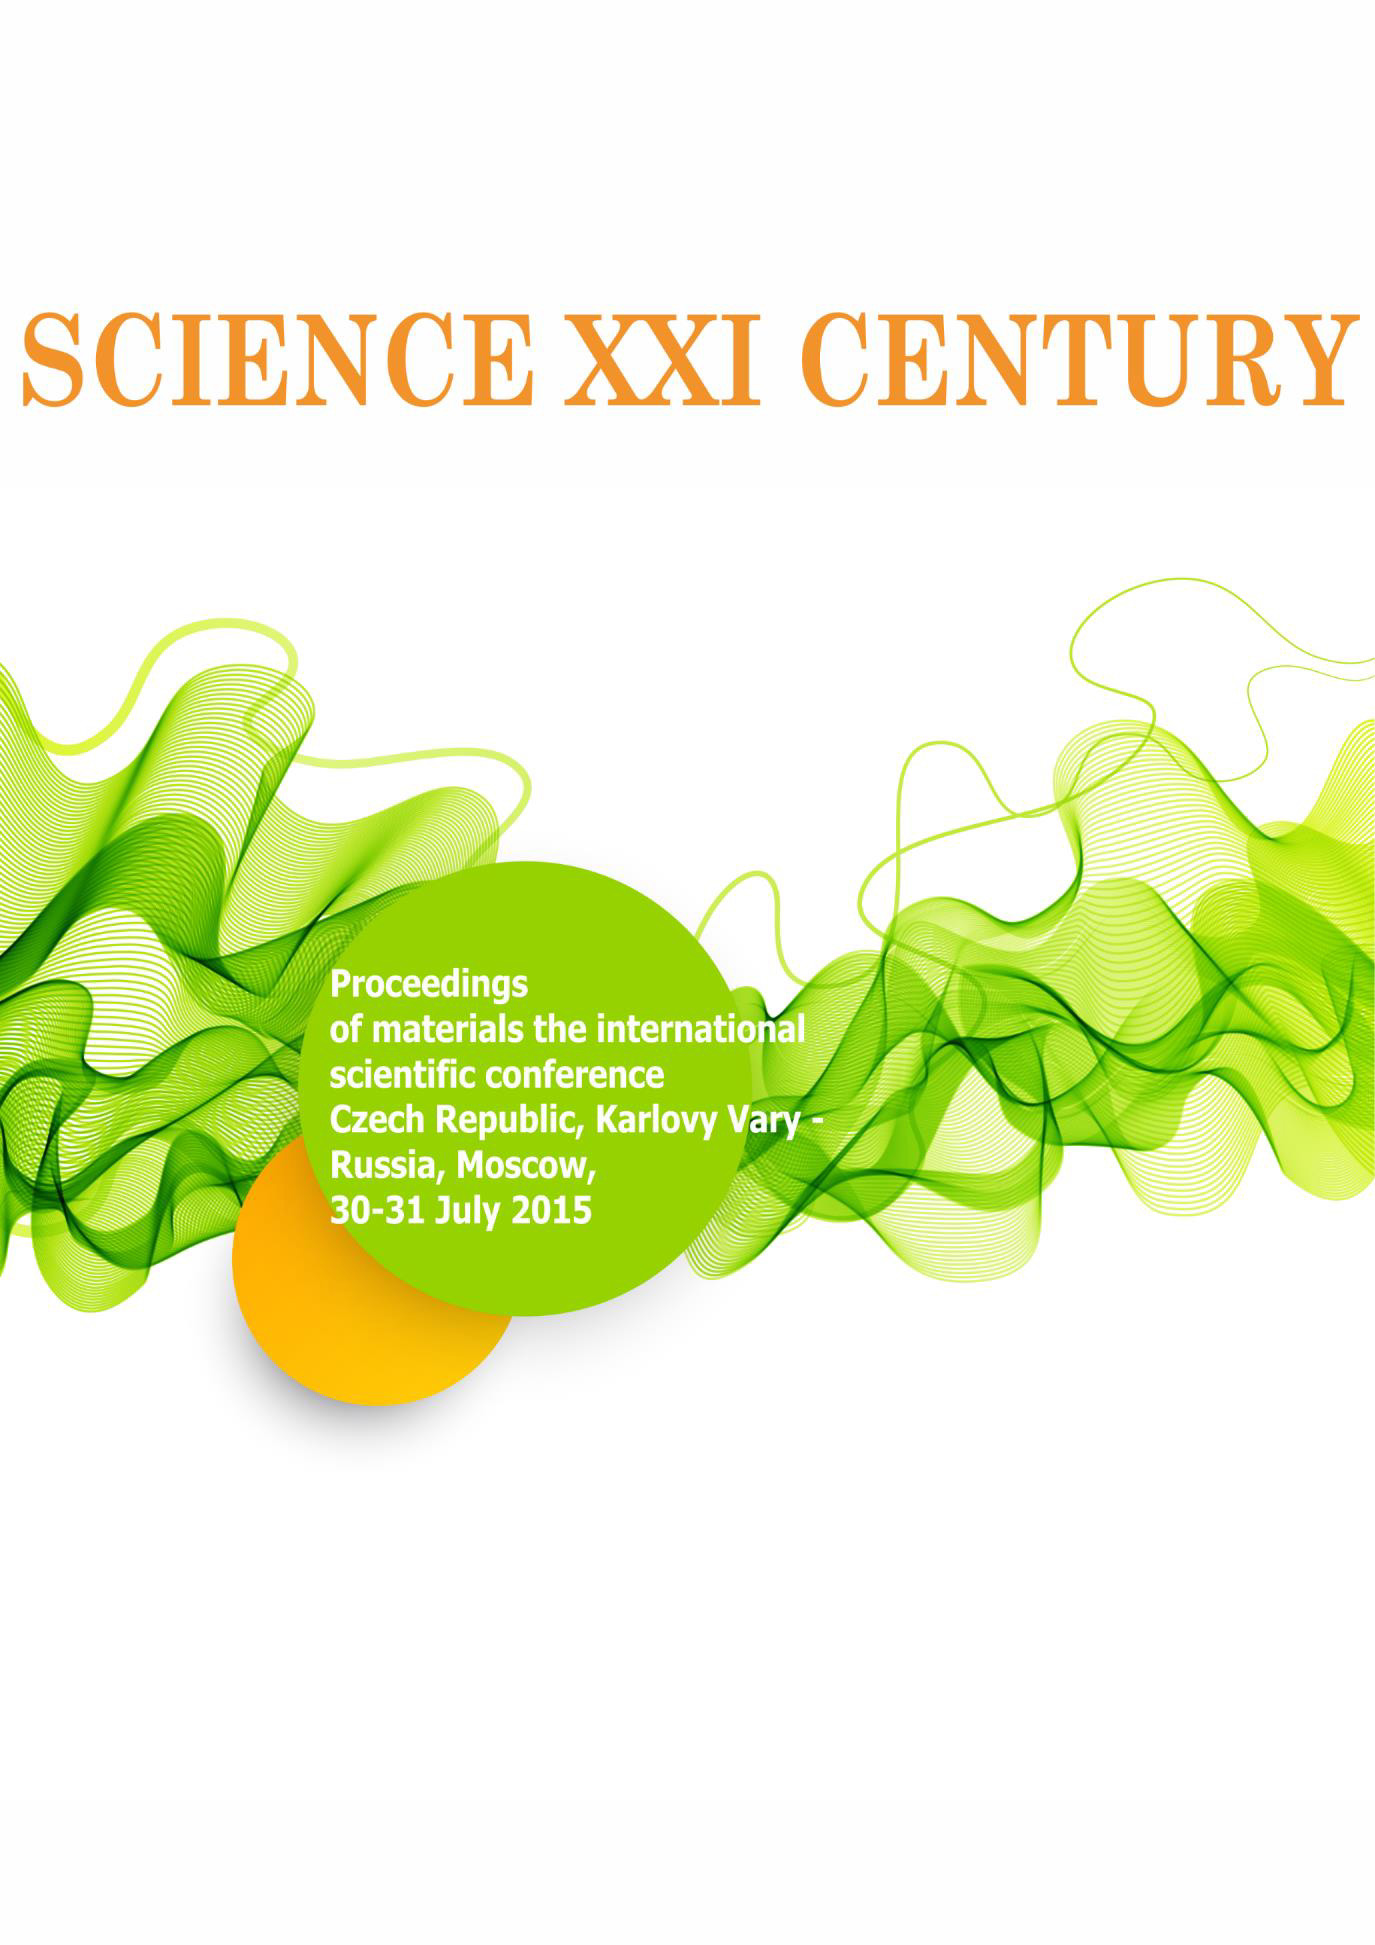 Сборник статей Science XXI century. Proceedings of materials the international scientific conference. Czech Republic, Karlovy Vary – Russia, Moscow, 30-31 July 2015 princeton energy resources international handbook of international electrical safety practices